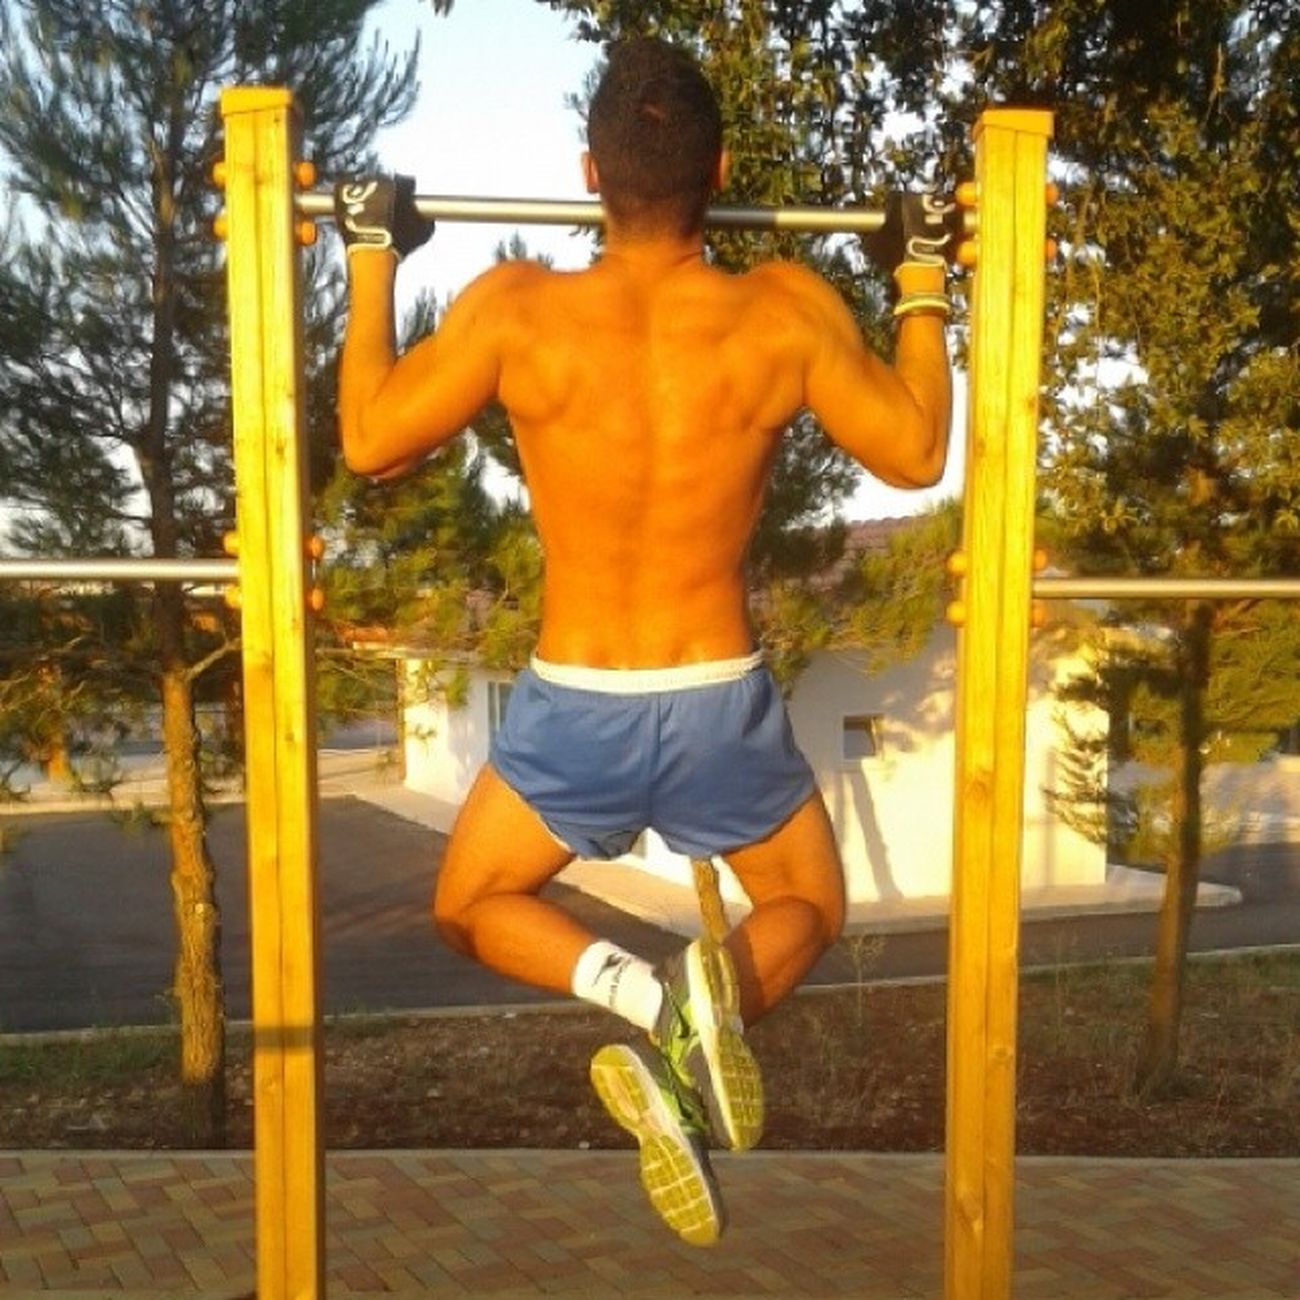 Me Allenamento Corpolibero Trazioni Street Workout Open Openair Fatica Park Parco Like Love Likeforlike Like4like Follow Followme Follow4follow Followrivers Likebackteam Likealways Cute Cool Nofilter Senzafiltro best bestgram bestoftheday picoftheday top